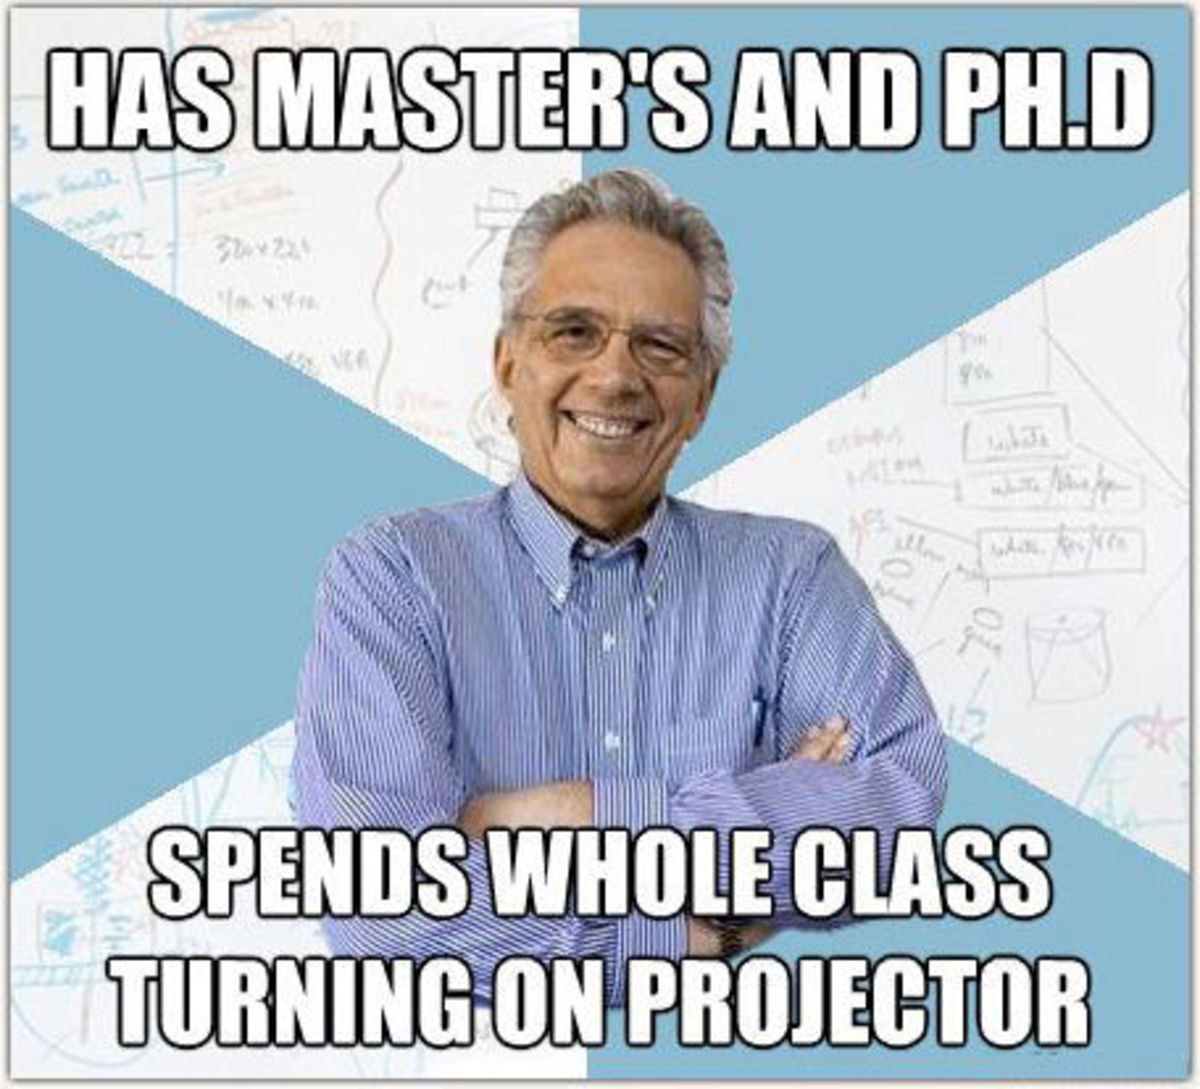 I can identify with this one. Make sure you are familiar with the equipment before class begins.